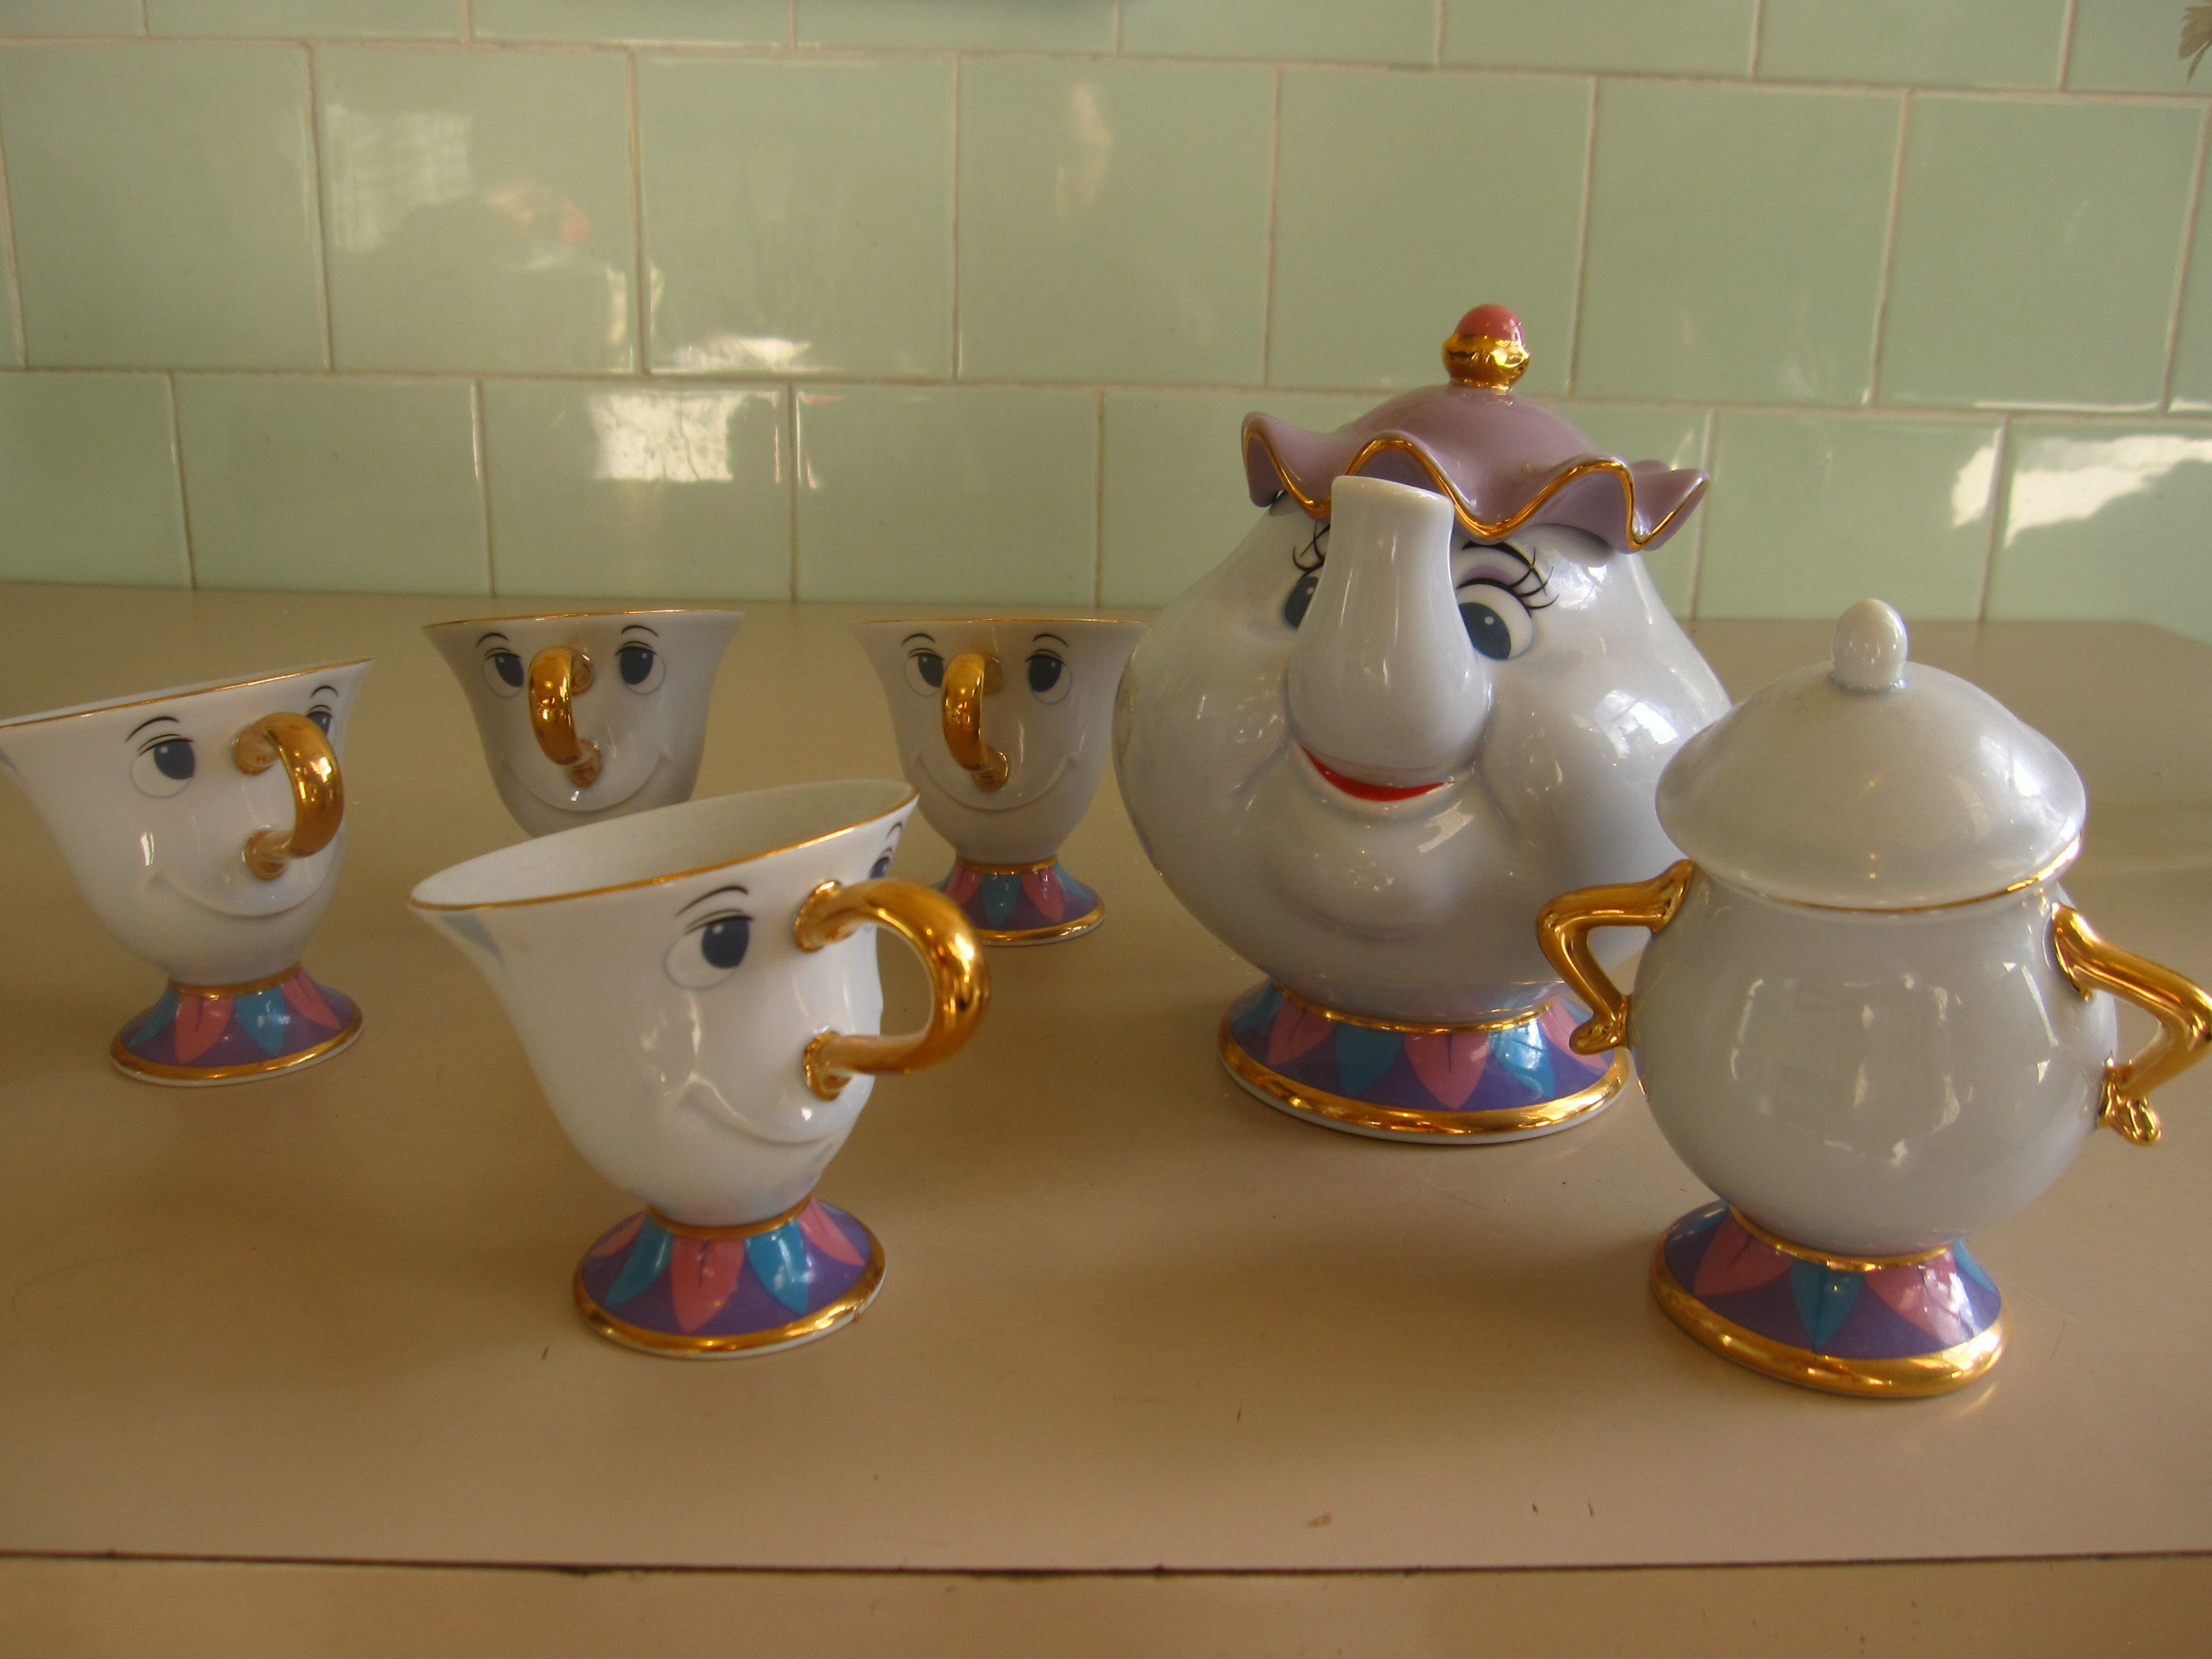 Mrs potts chip christmas decoration - Beauty And The Beast Tea Set Featuring Mrs Potts Chip And A Very